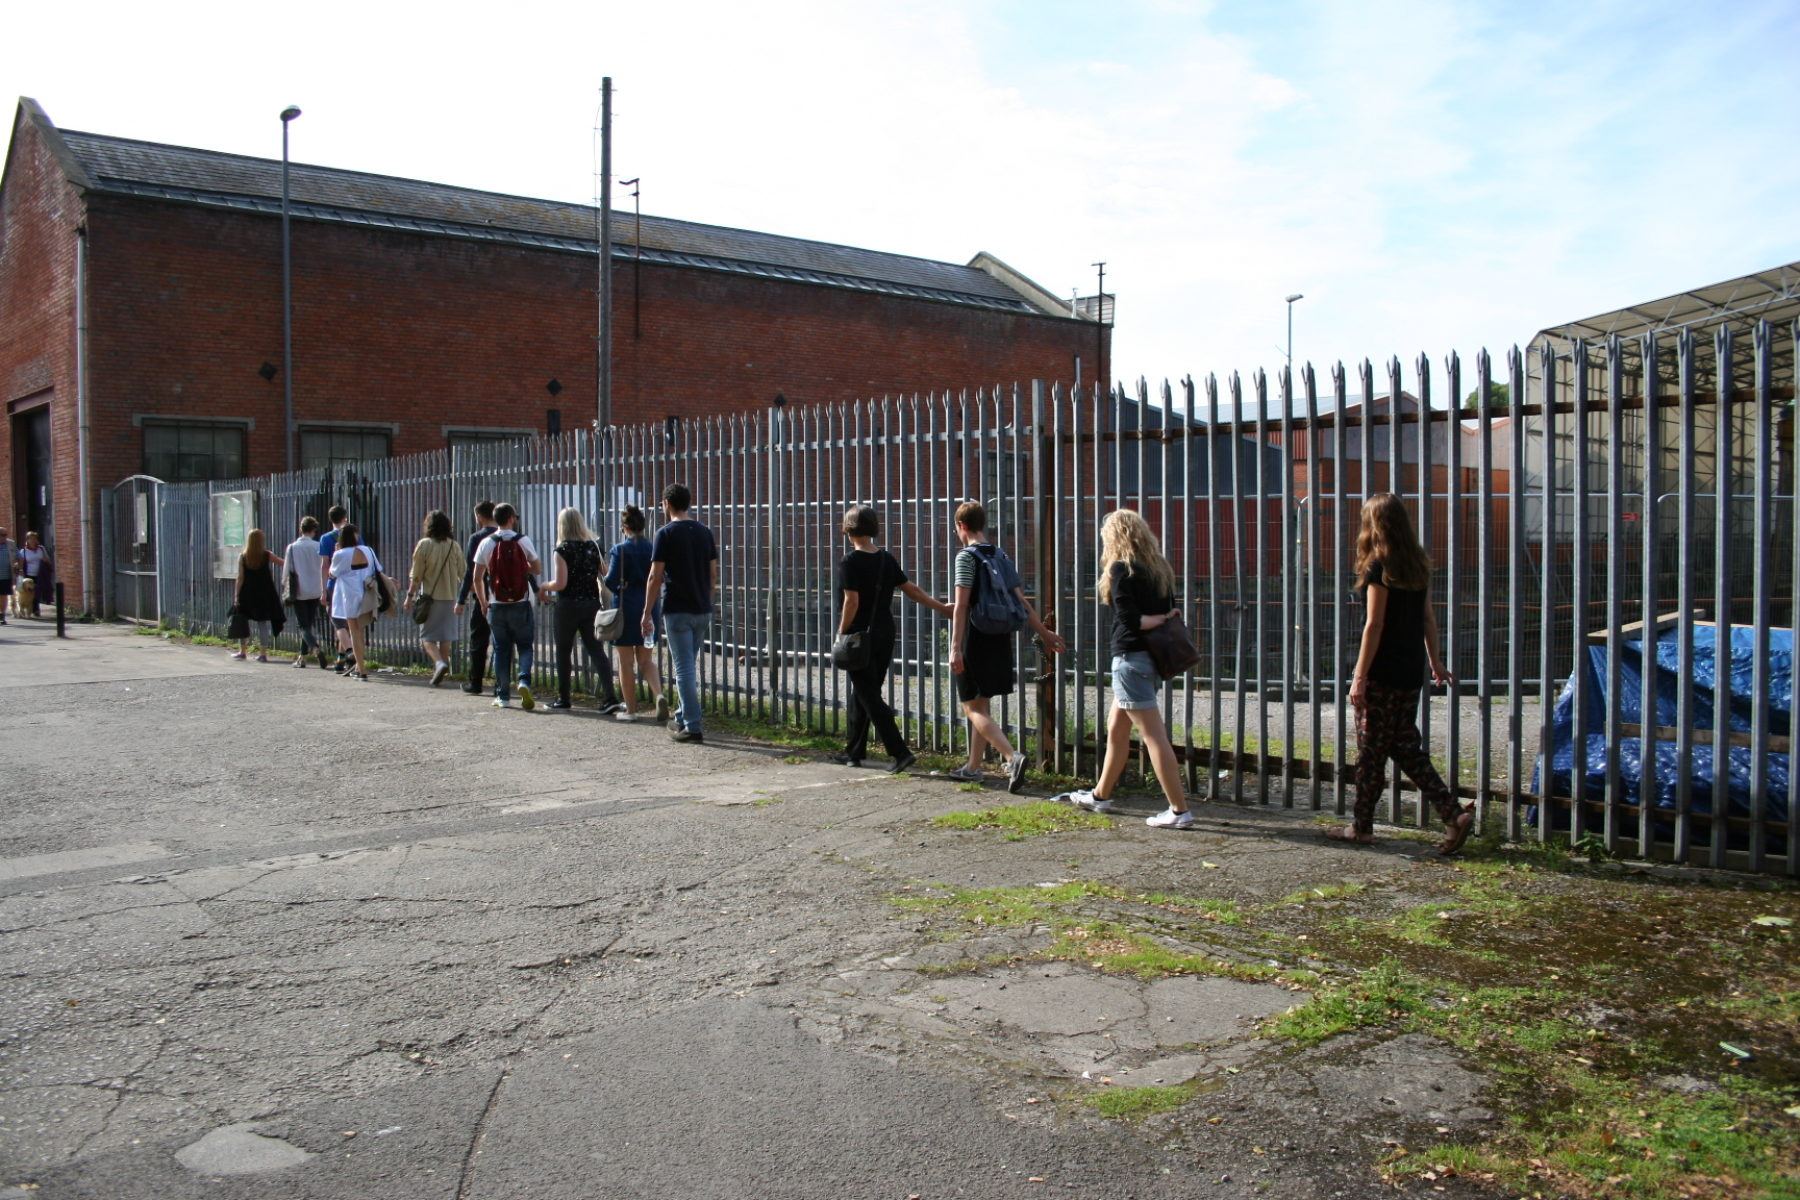 A group of people walk alongside an unfriendly metal fence.